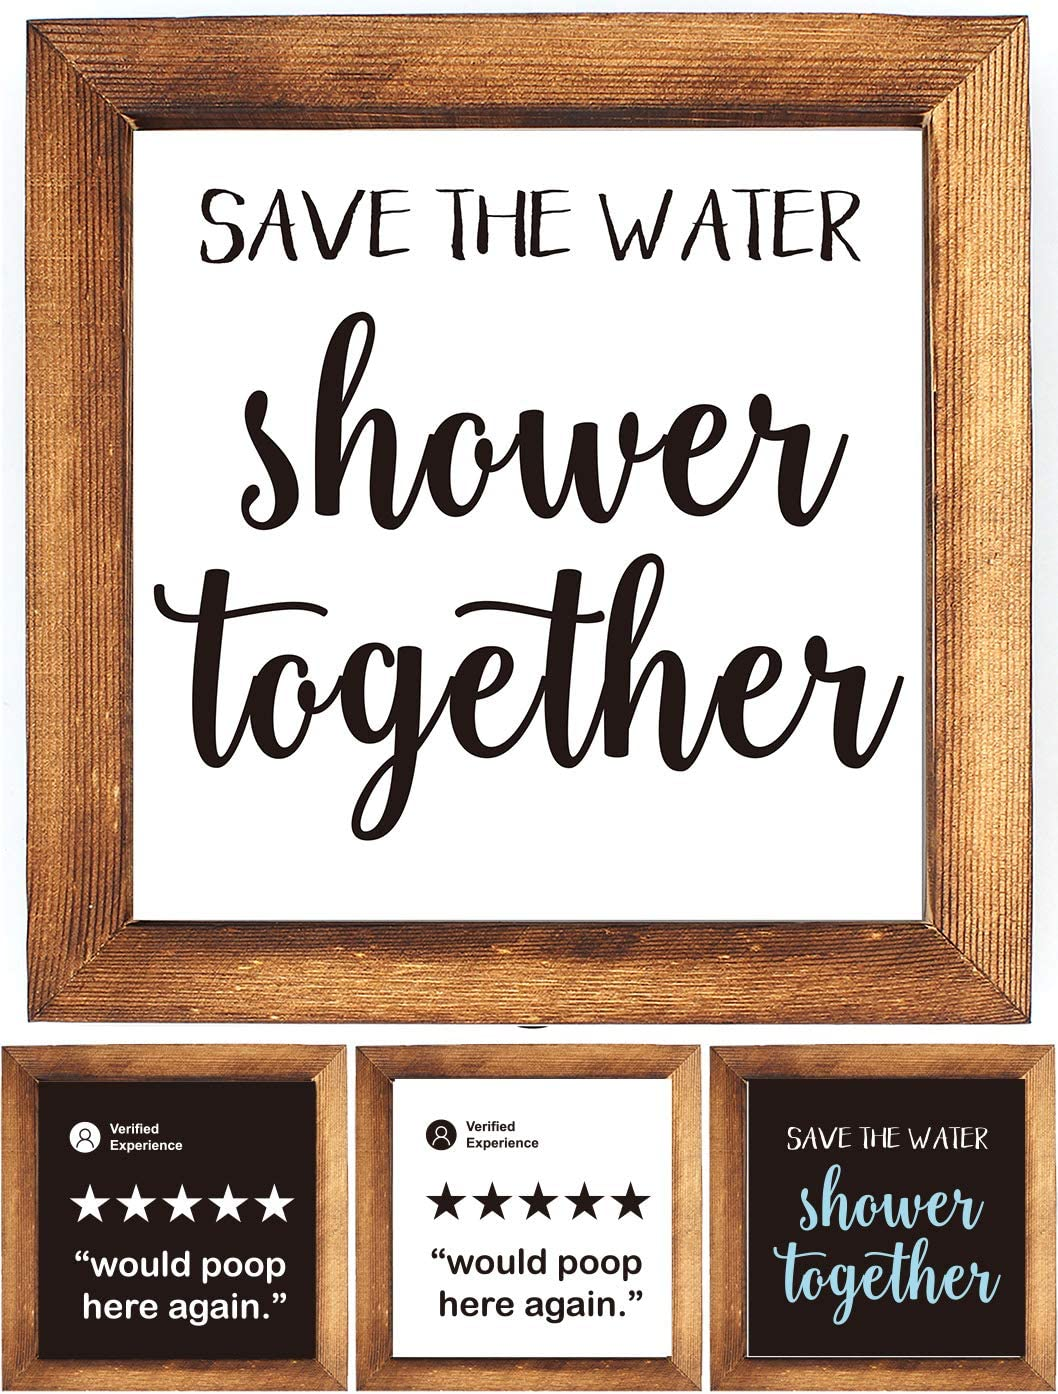 KU-DaYi Wood Framed Block Sign -Save The Water Shower Together, Funny Rustic Farmhouse Guest Bathroom Toilet Wooden Wood Framed Wall Hanging Sign Decor